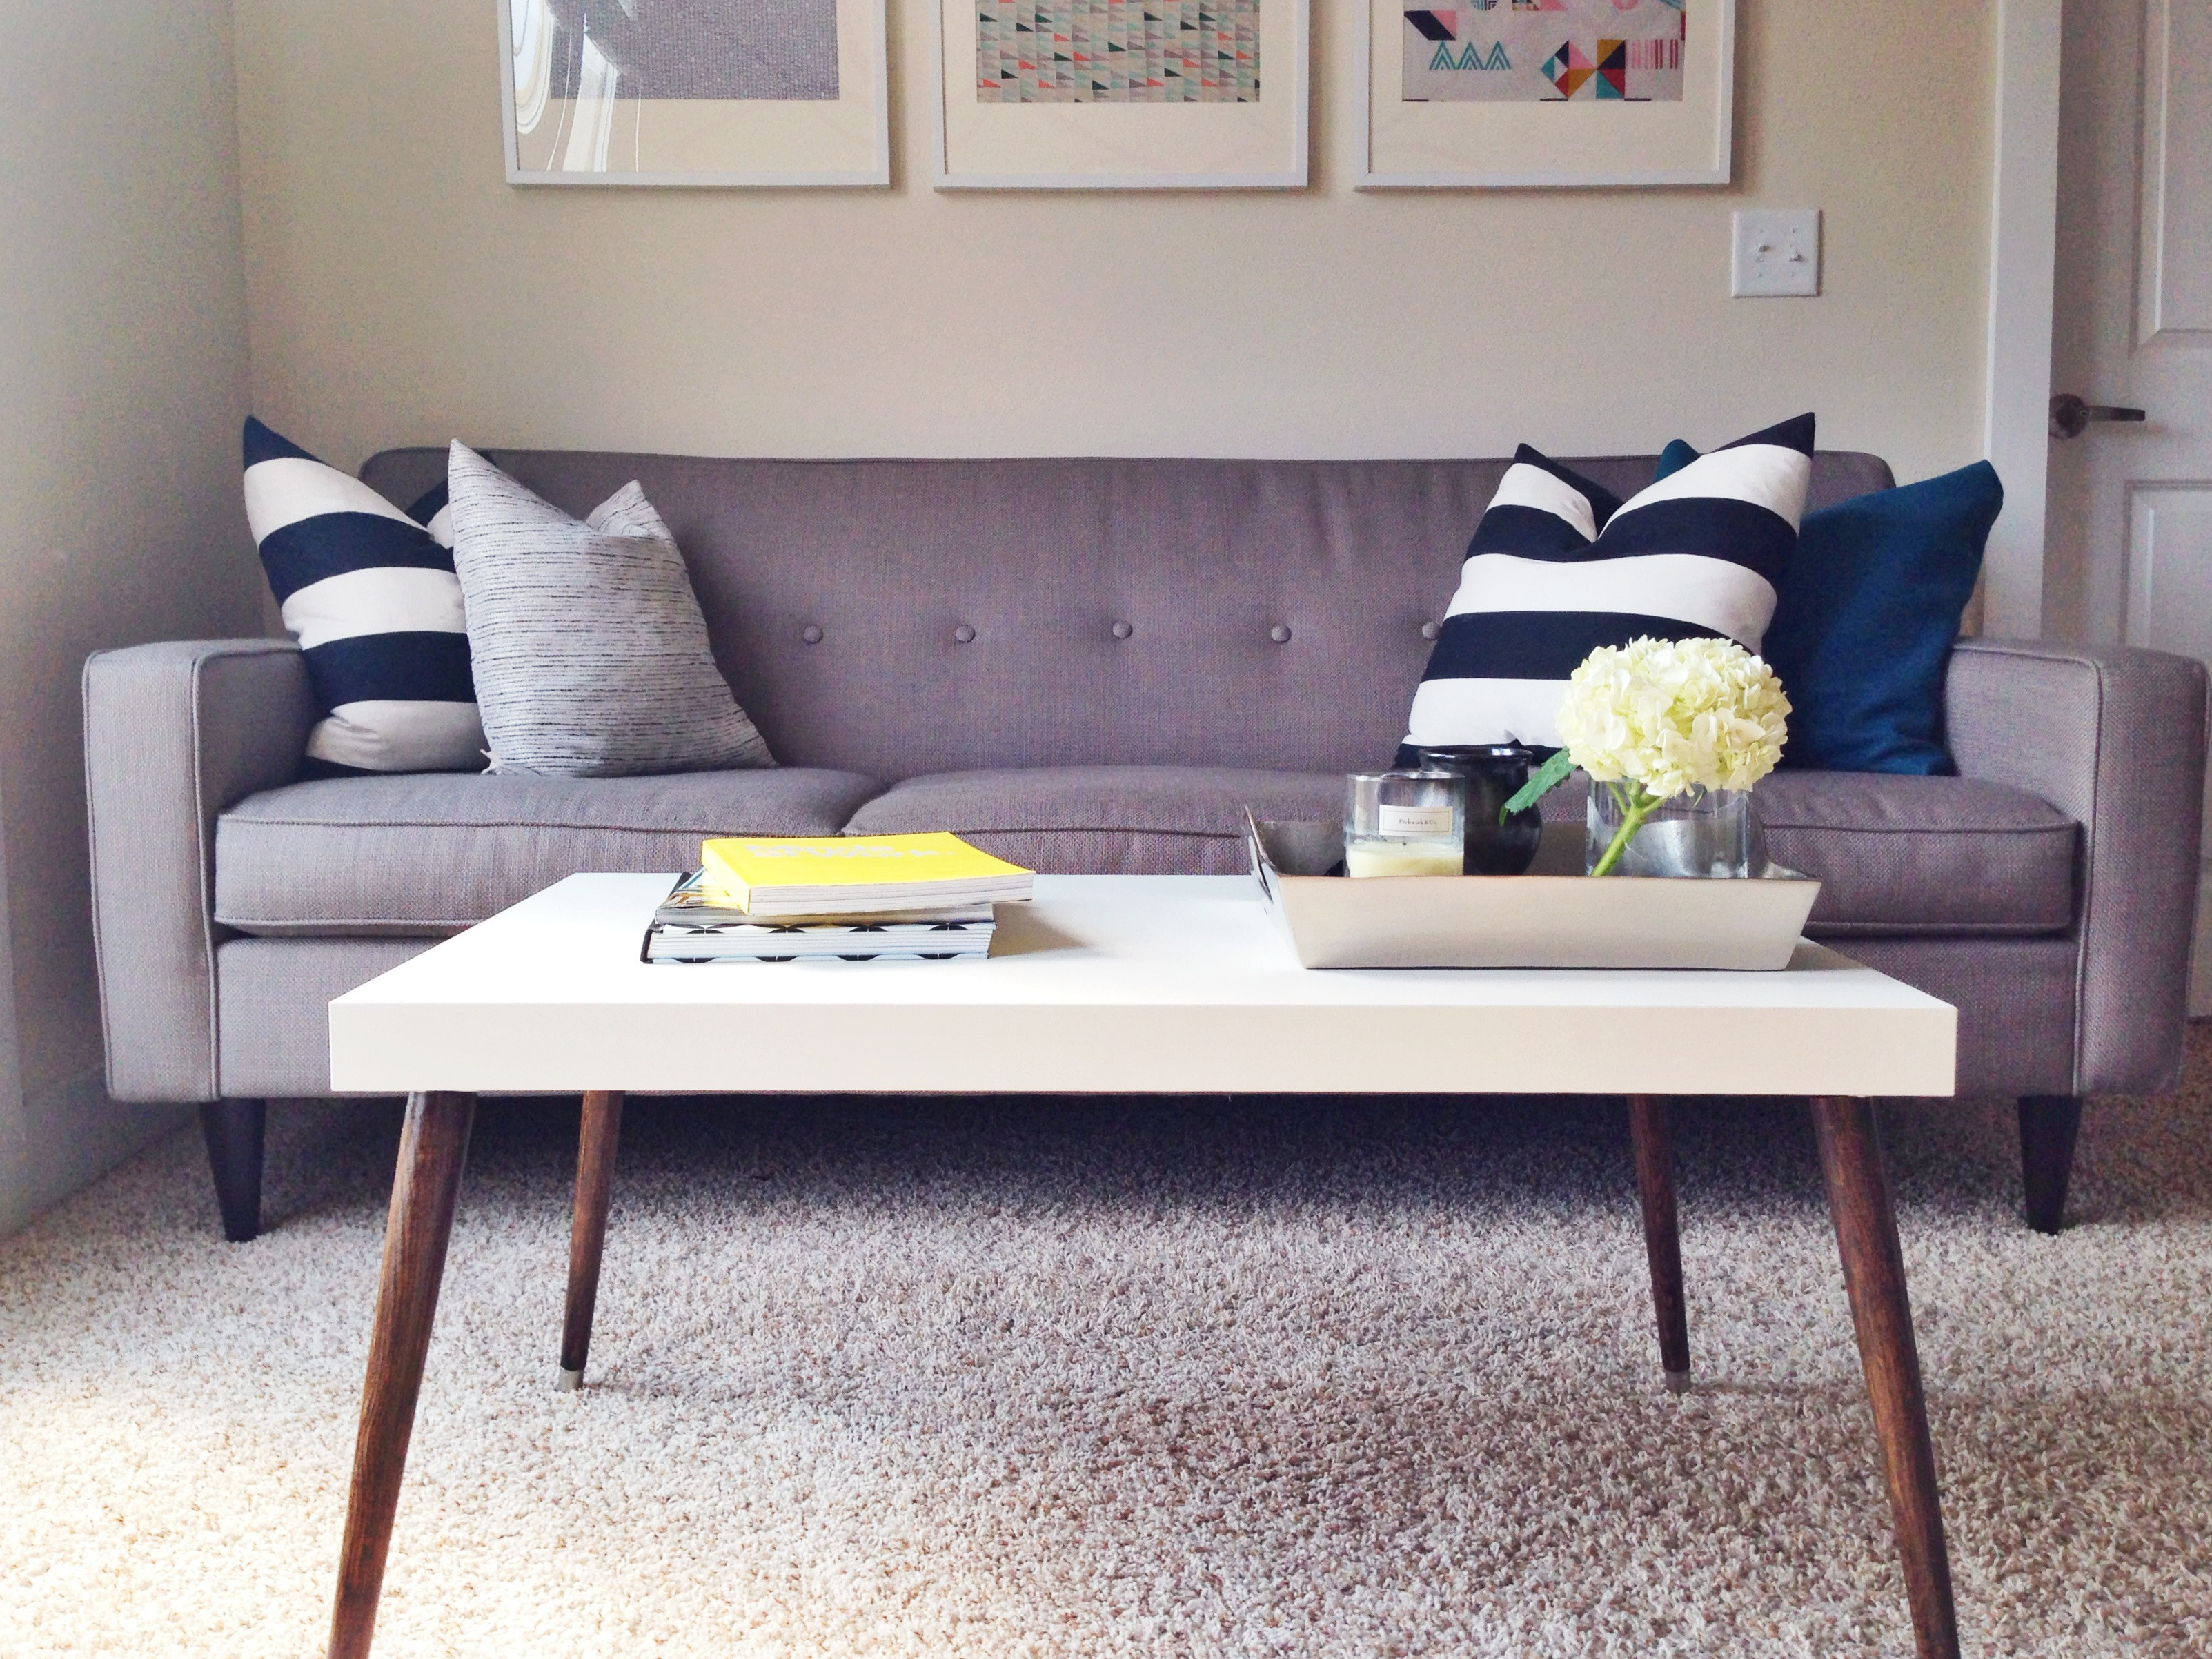 Best ideas about DIY Mid Century Modern Coffee Table . Save or Pin Awesome Ikea Hack of the Week A $60 sleek midcentury Now.